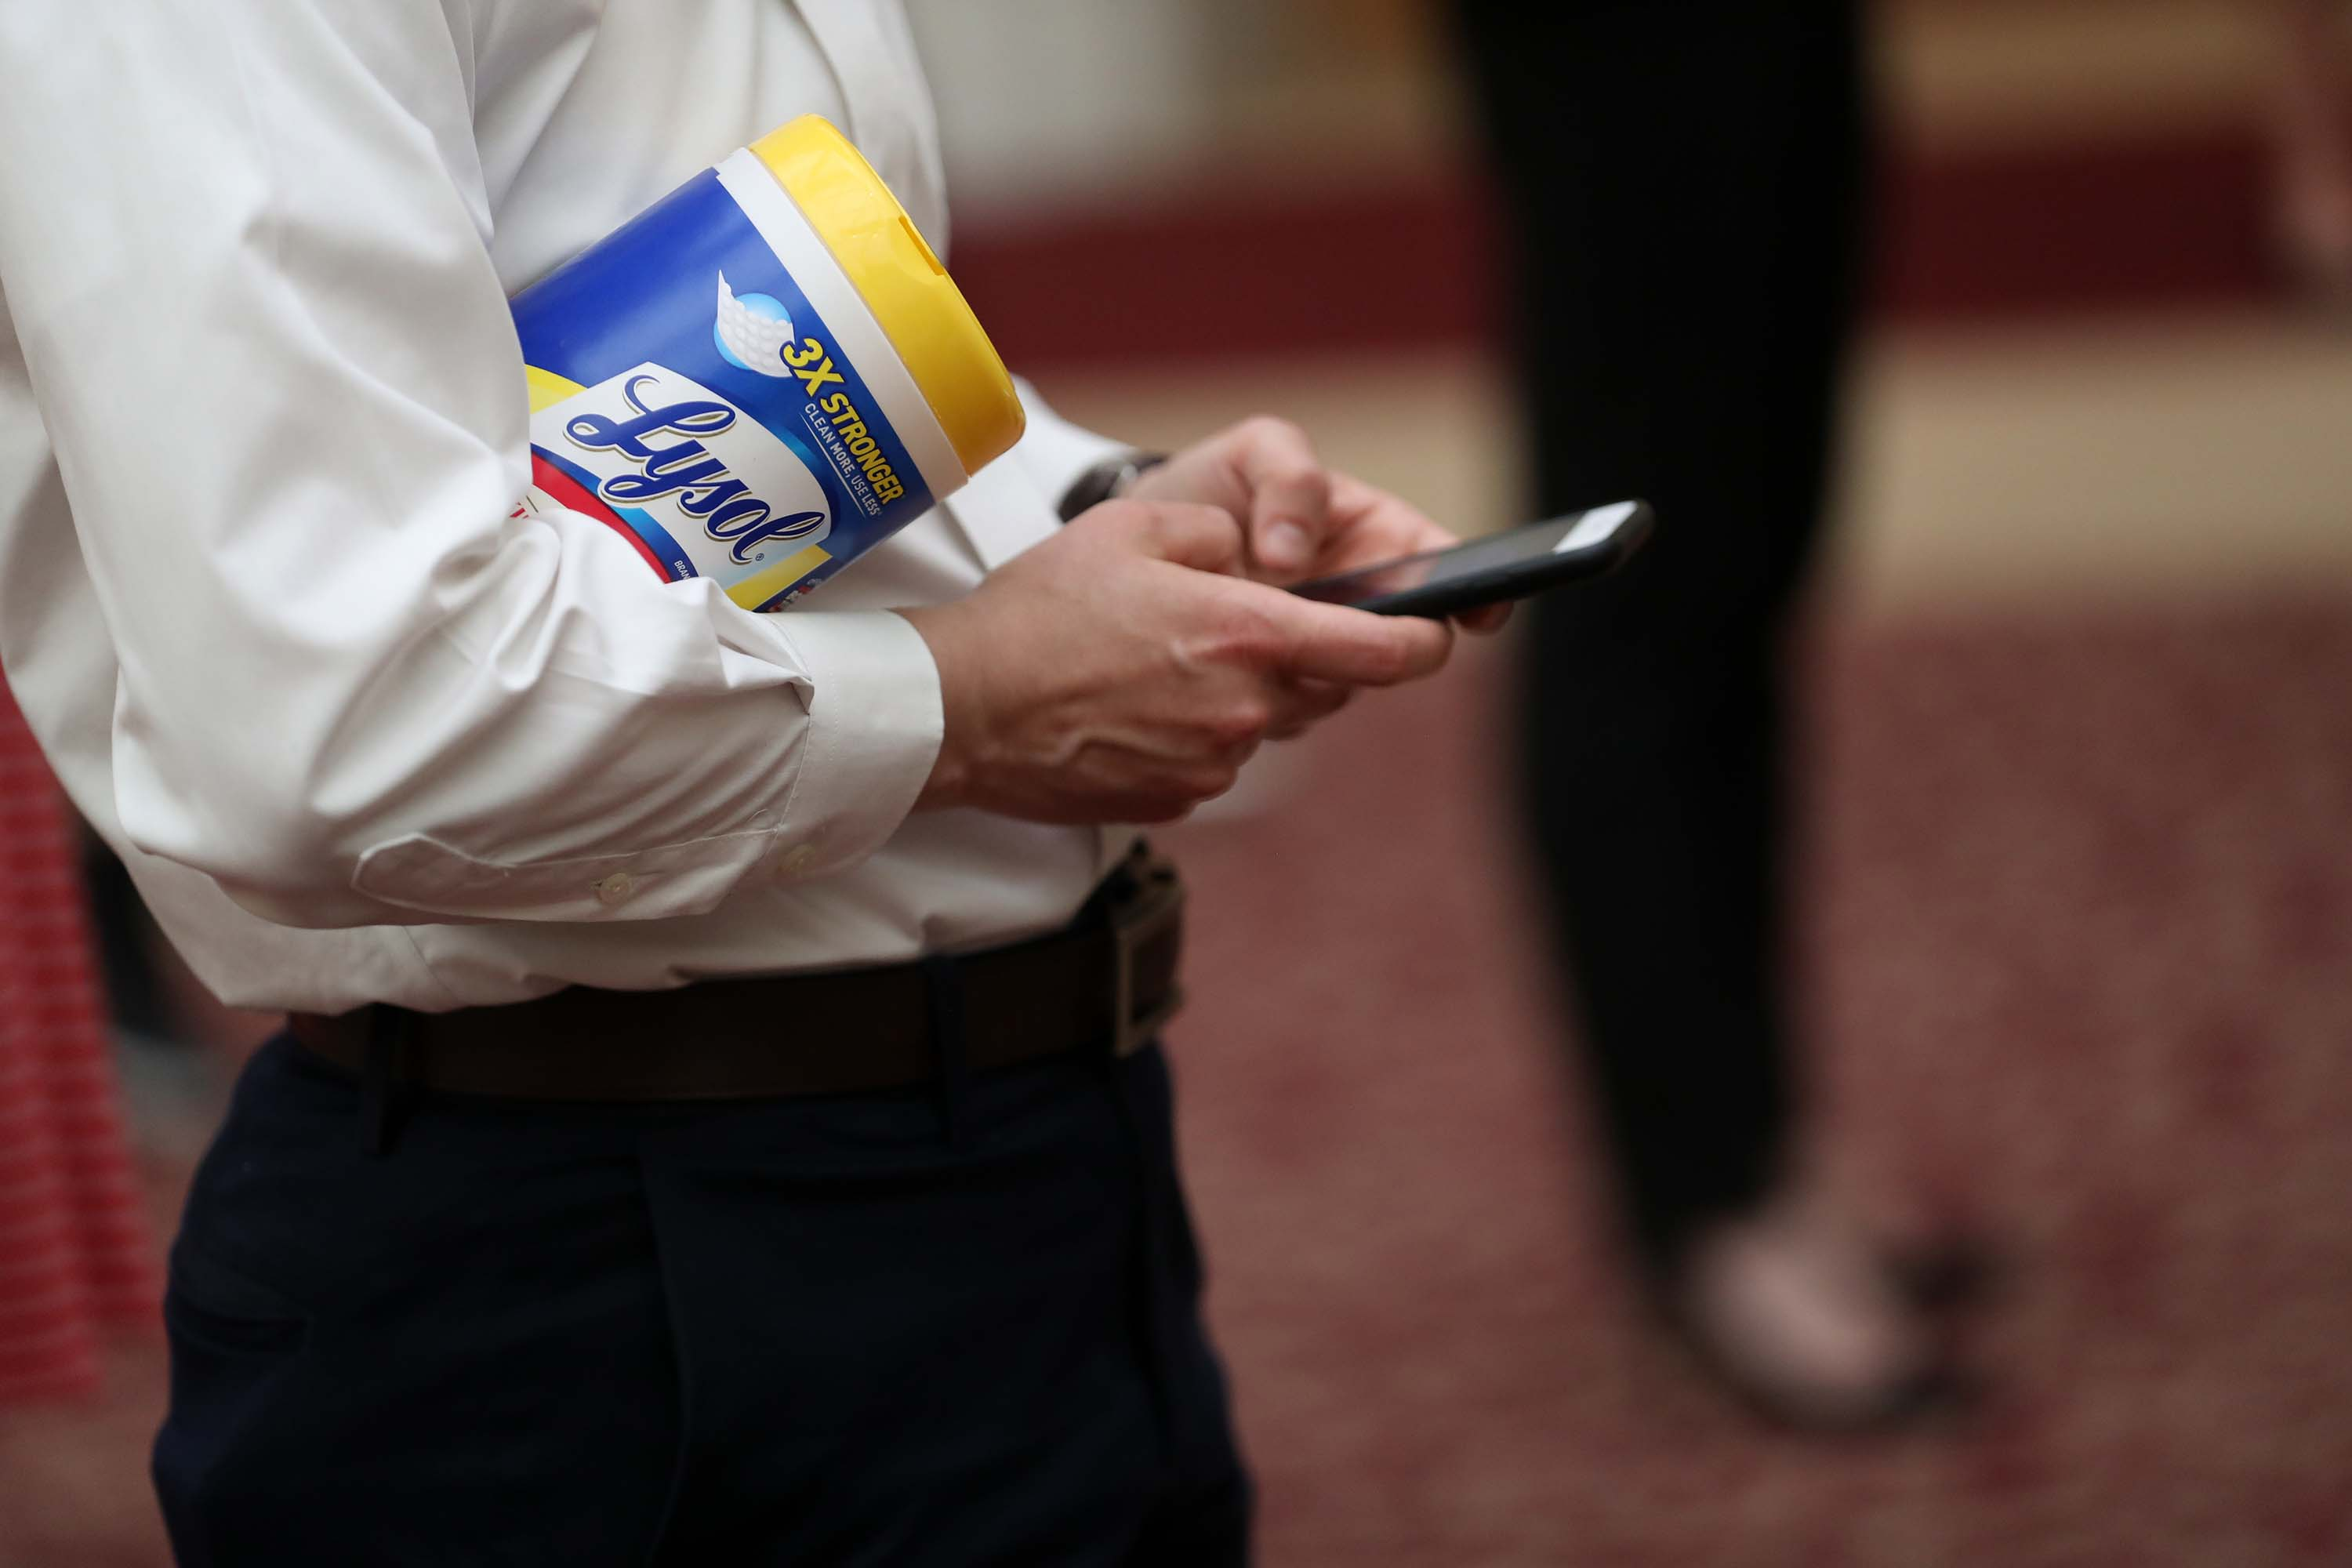 A press briefing attendee holds a container of Lysol disinfecting wipes at San Francisco City Hall on March 16.